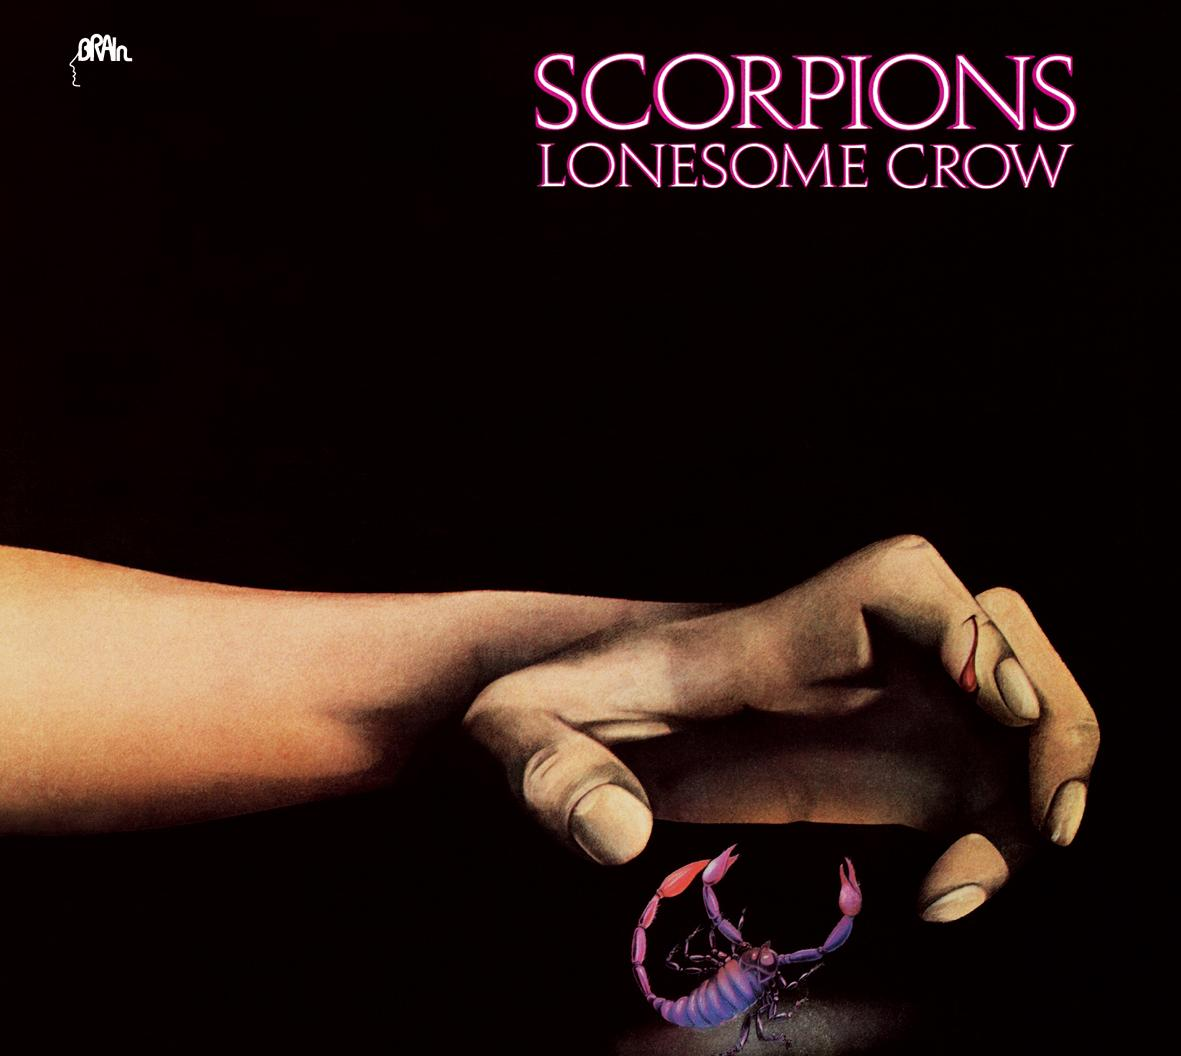 Drawn scorpion two IN HOMOEROTIC THE ALBUM OF